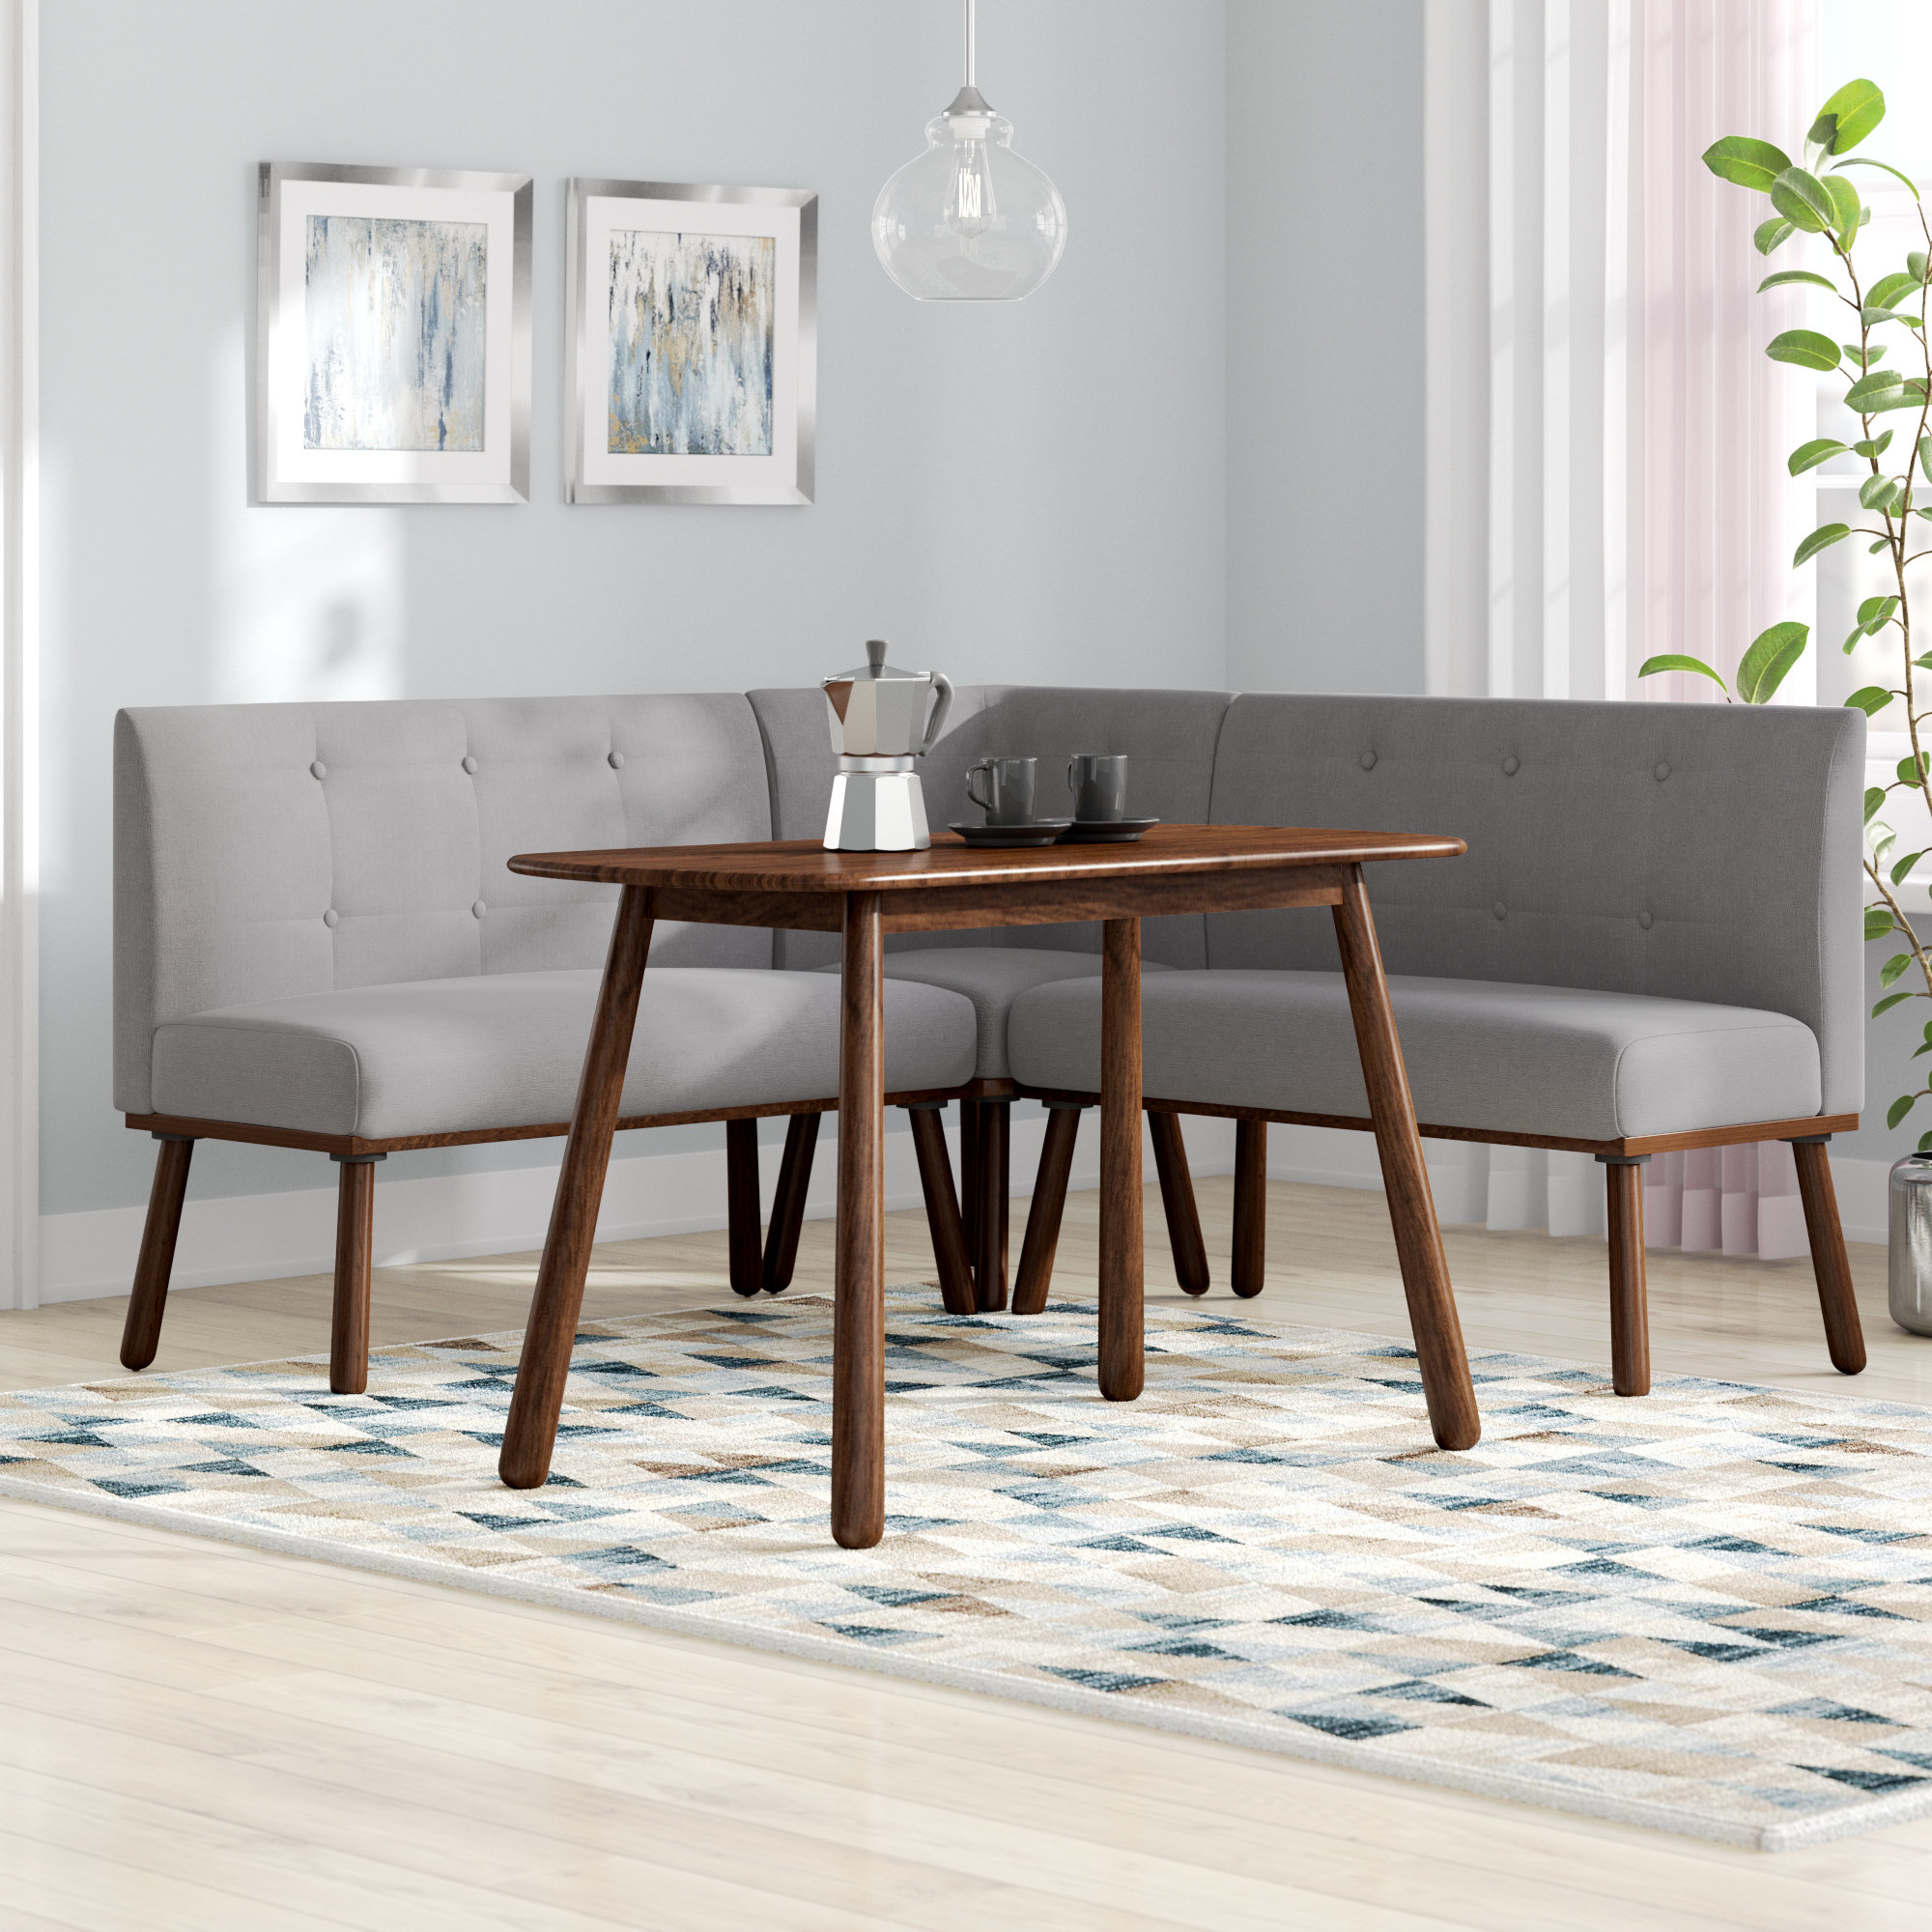 Current Ivy Bronx Bucci 4 Piece Breakfast Nook Rectangular Dining Set (View 23 of 25)